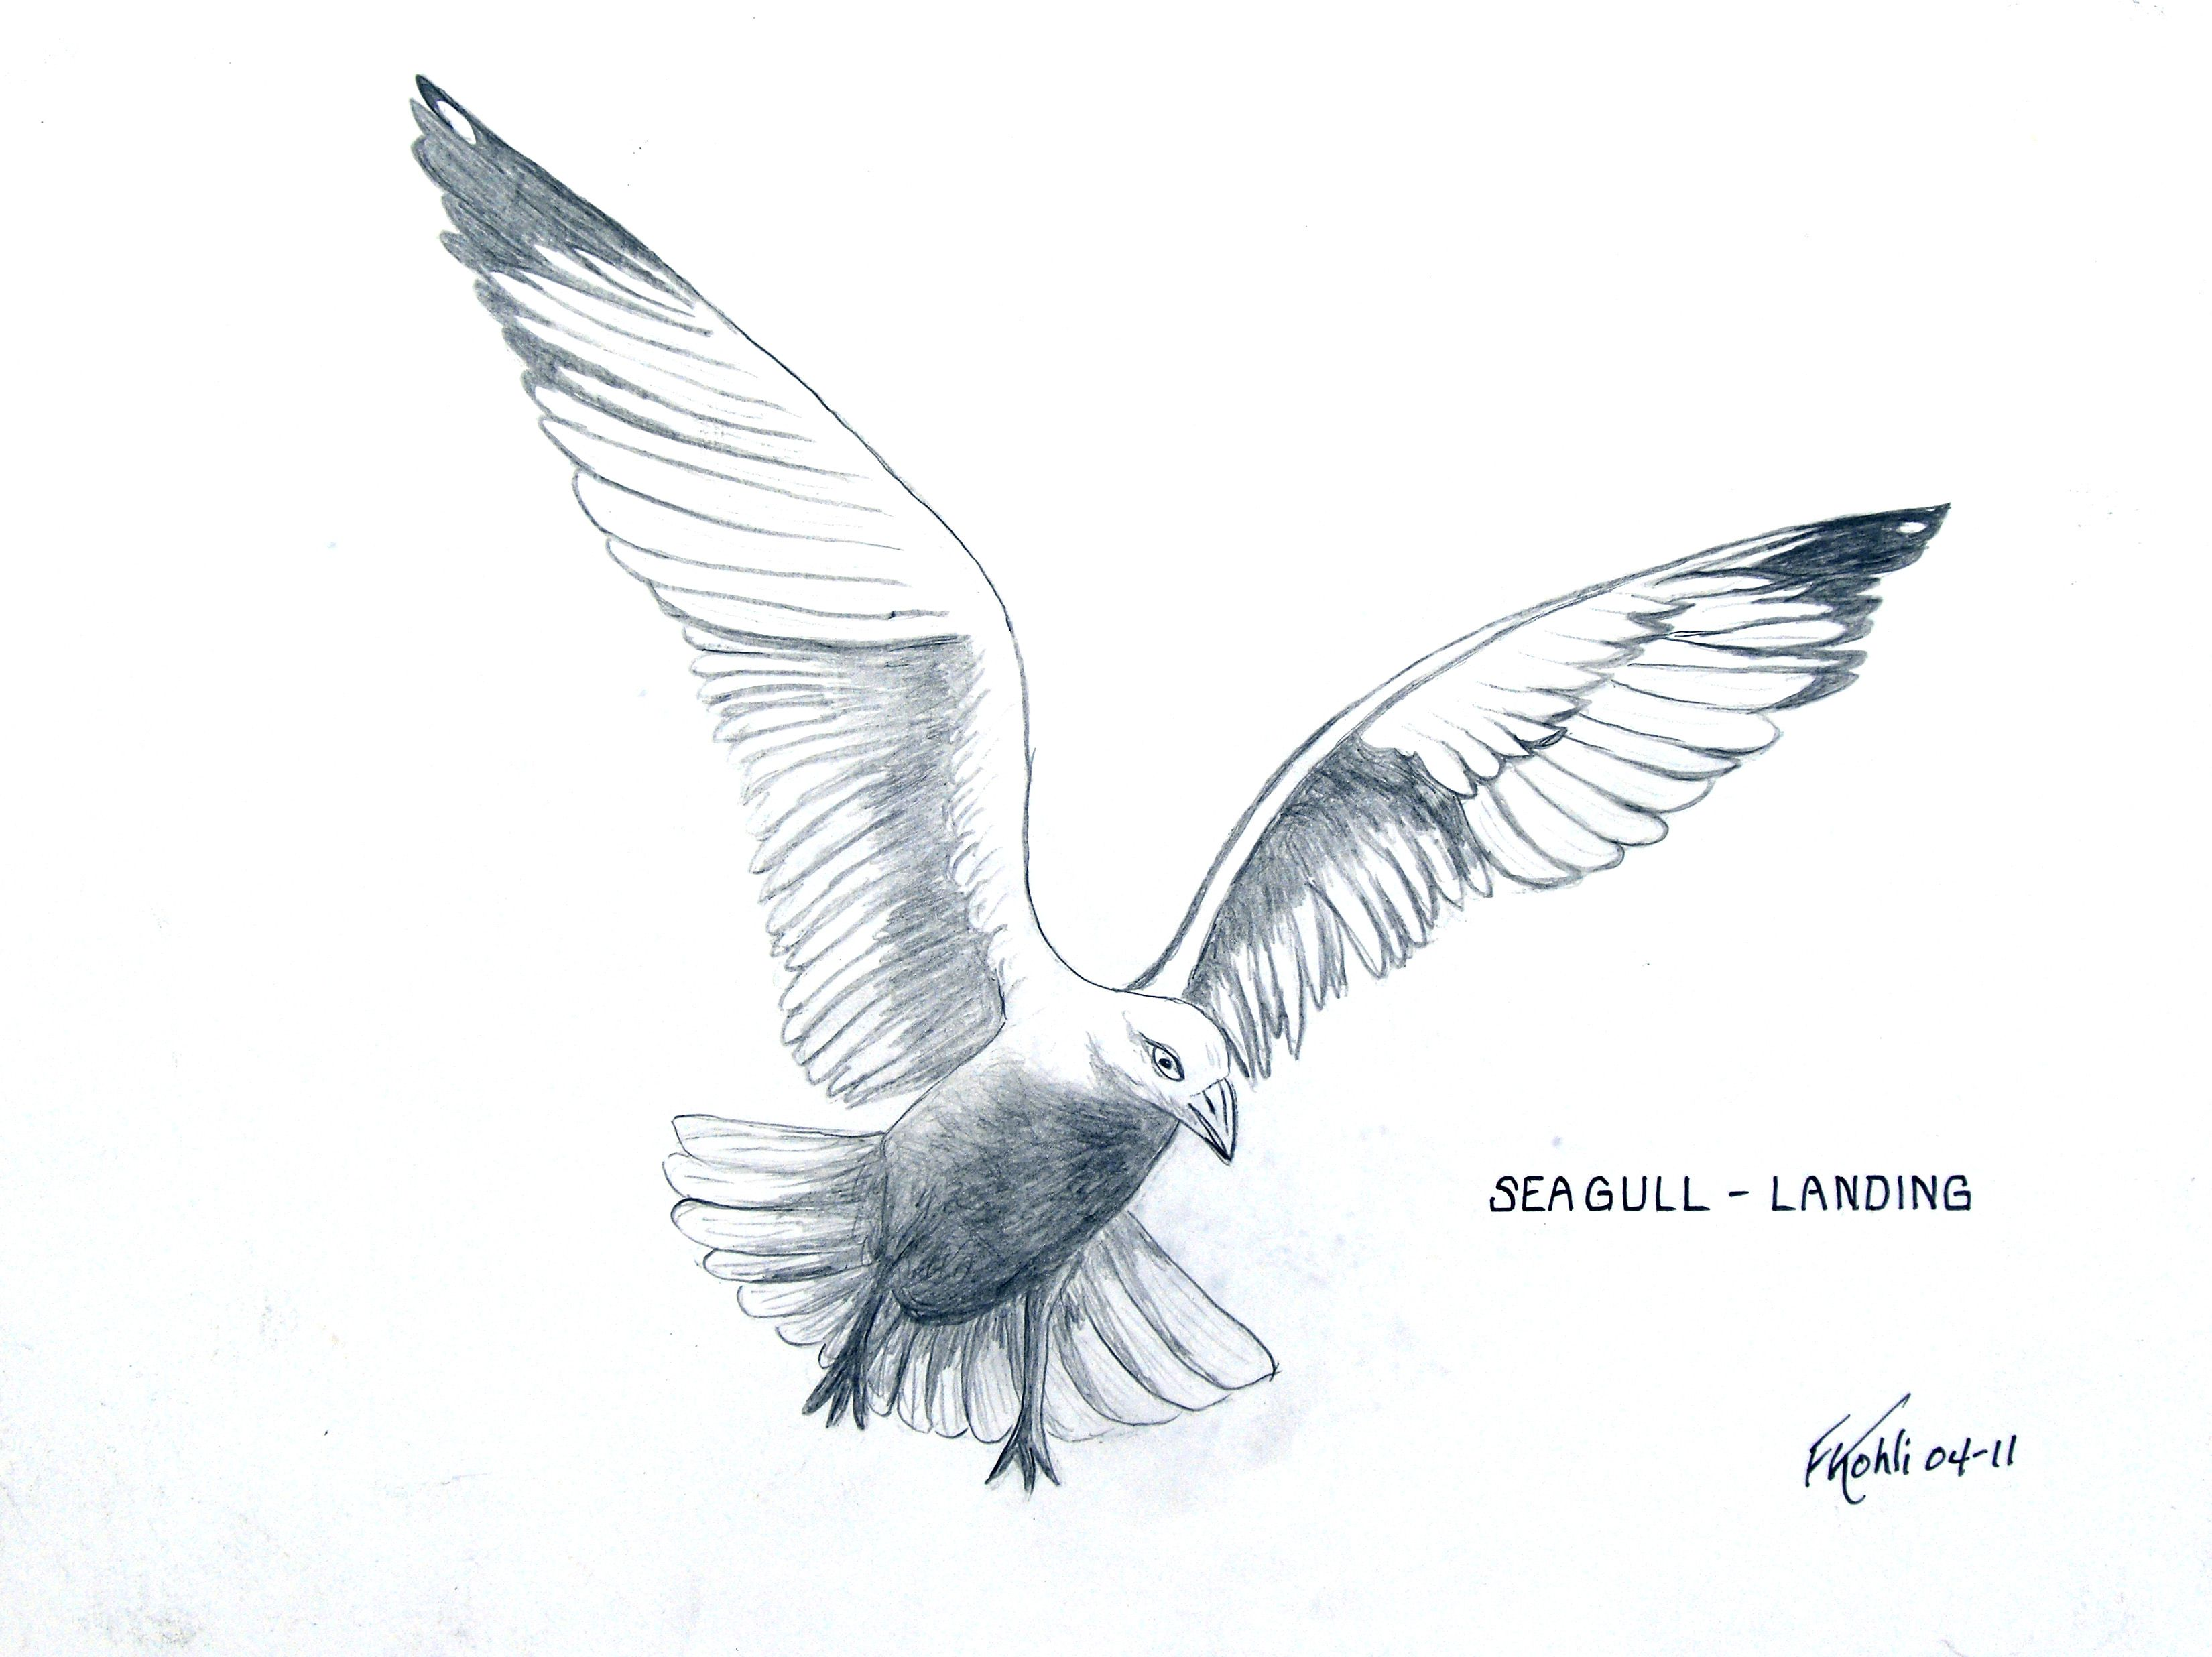 pencil drawing of a seagull landing